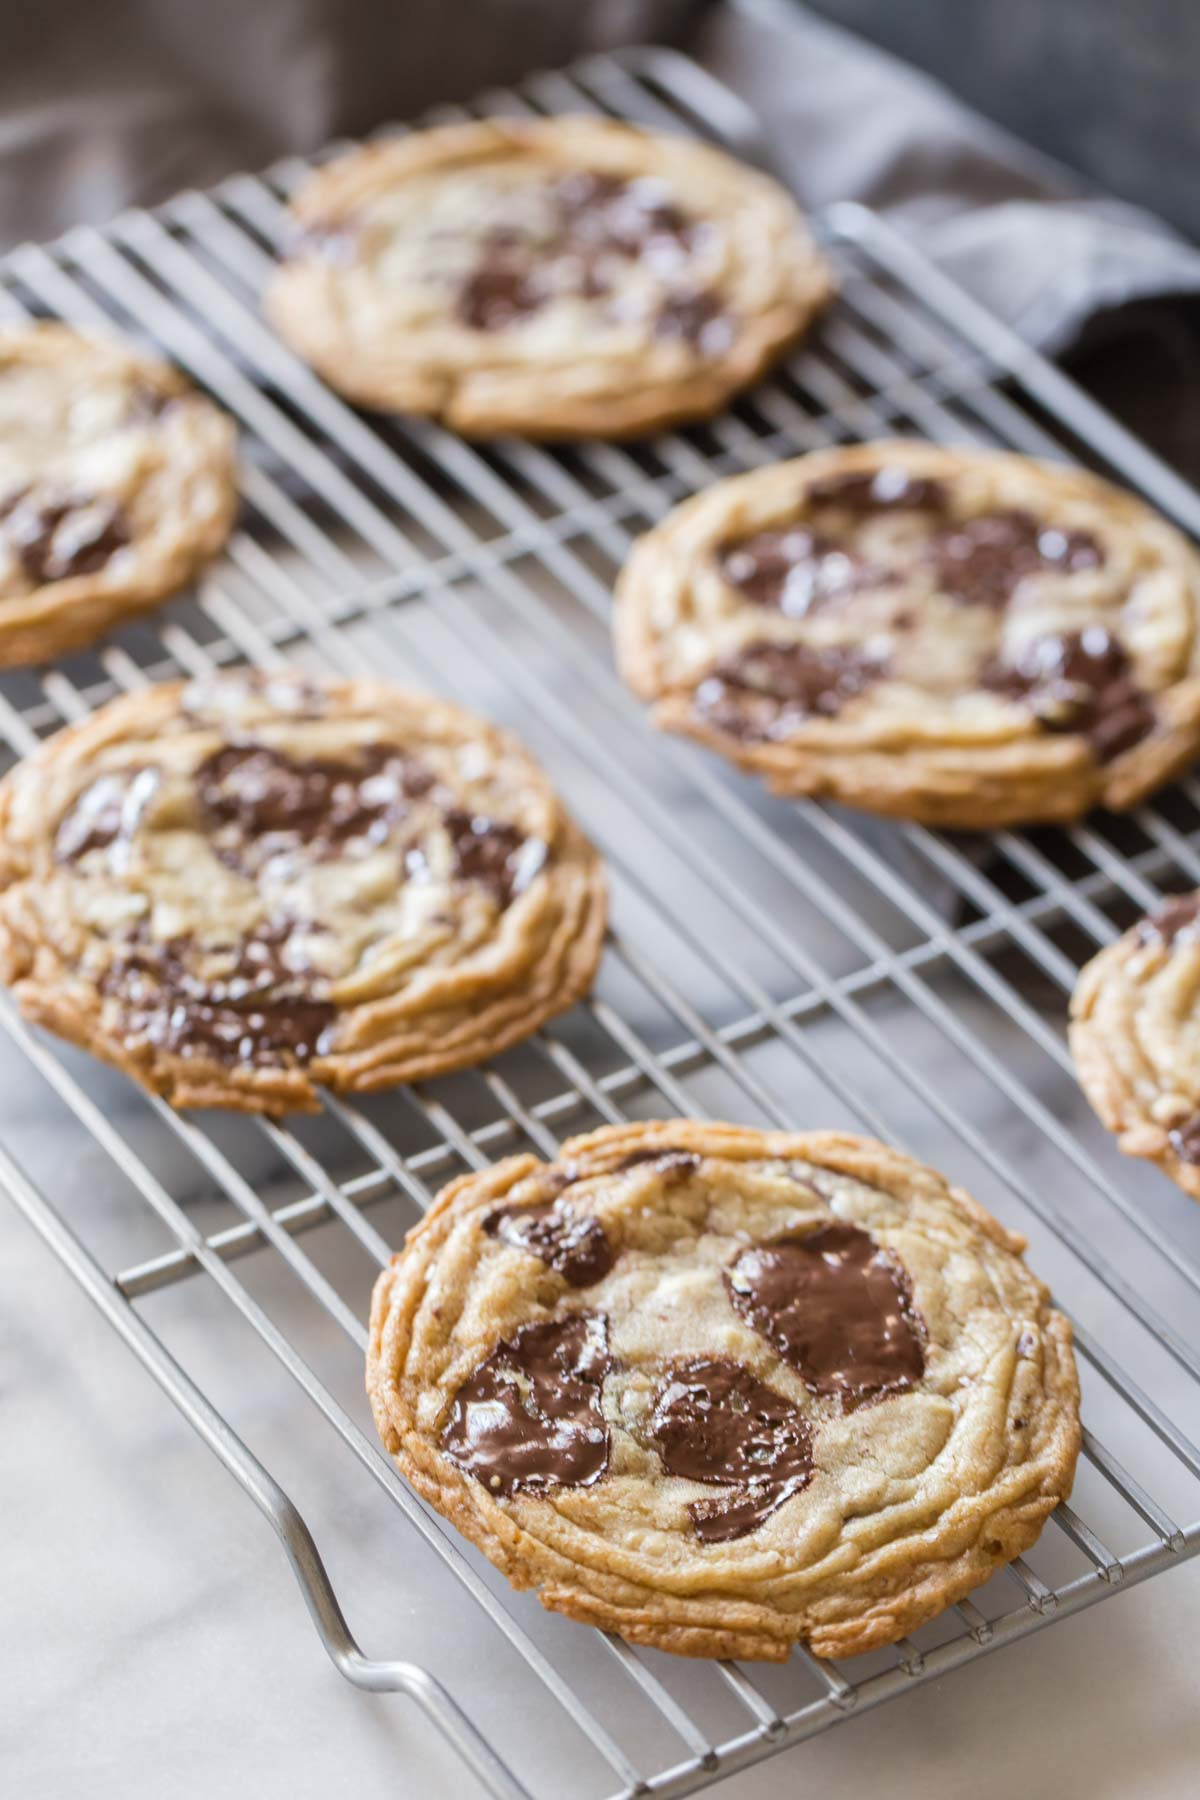 Toffee Almond Chocolate Chunk Cookies on a cooling rack.